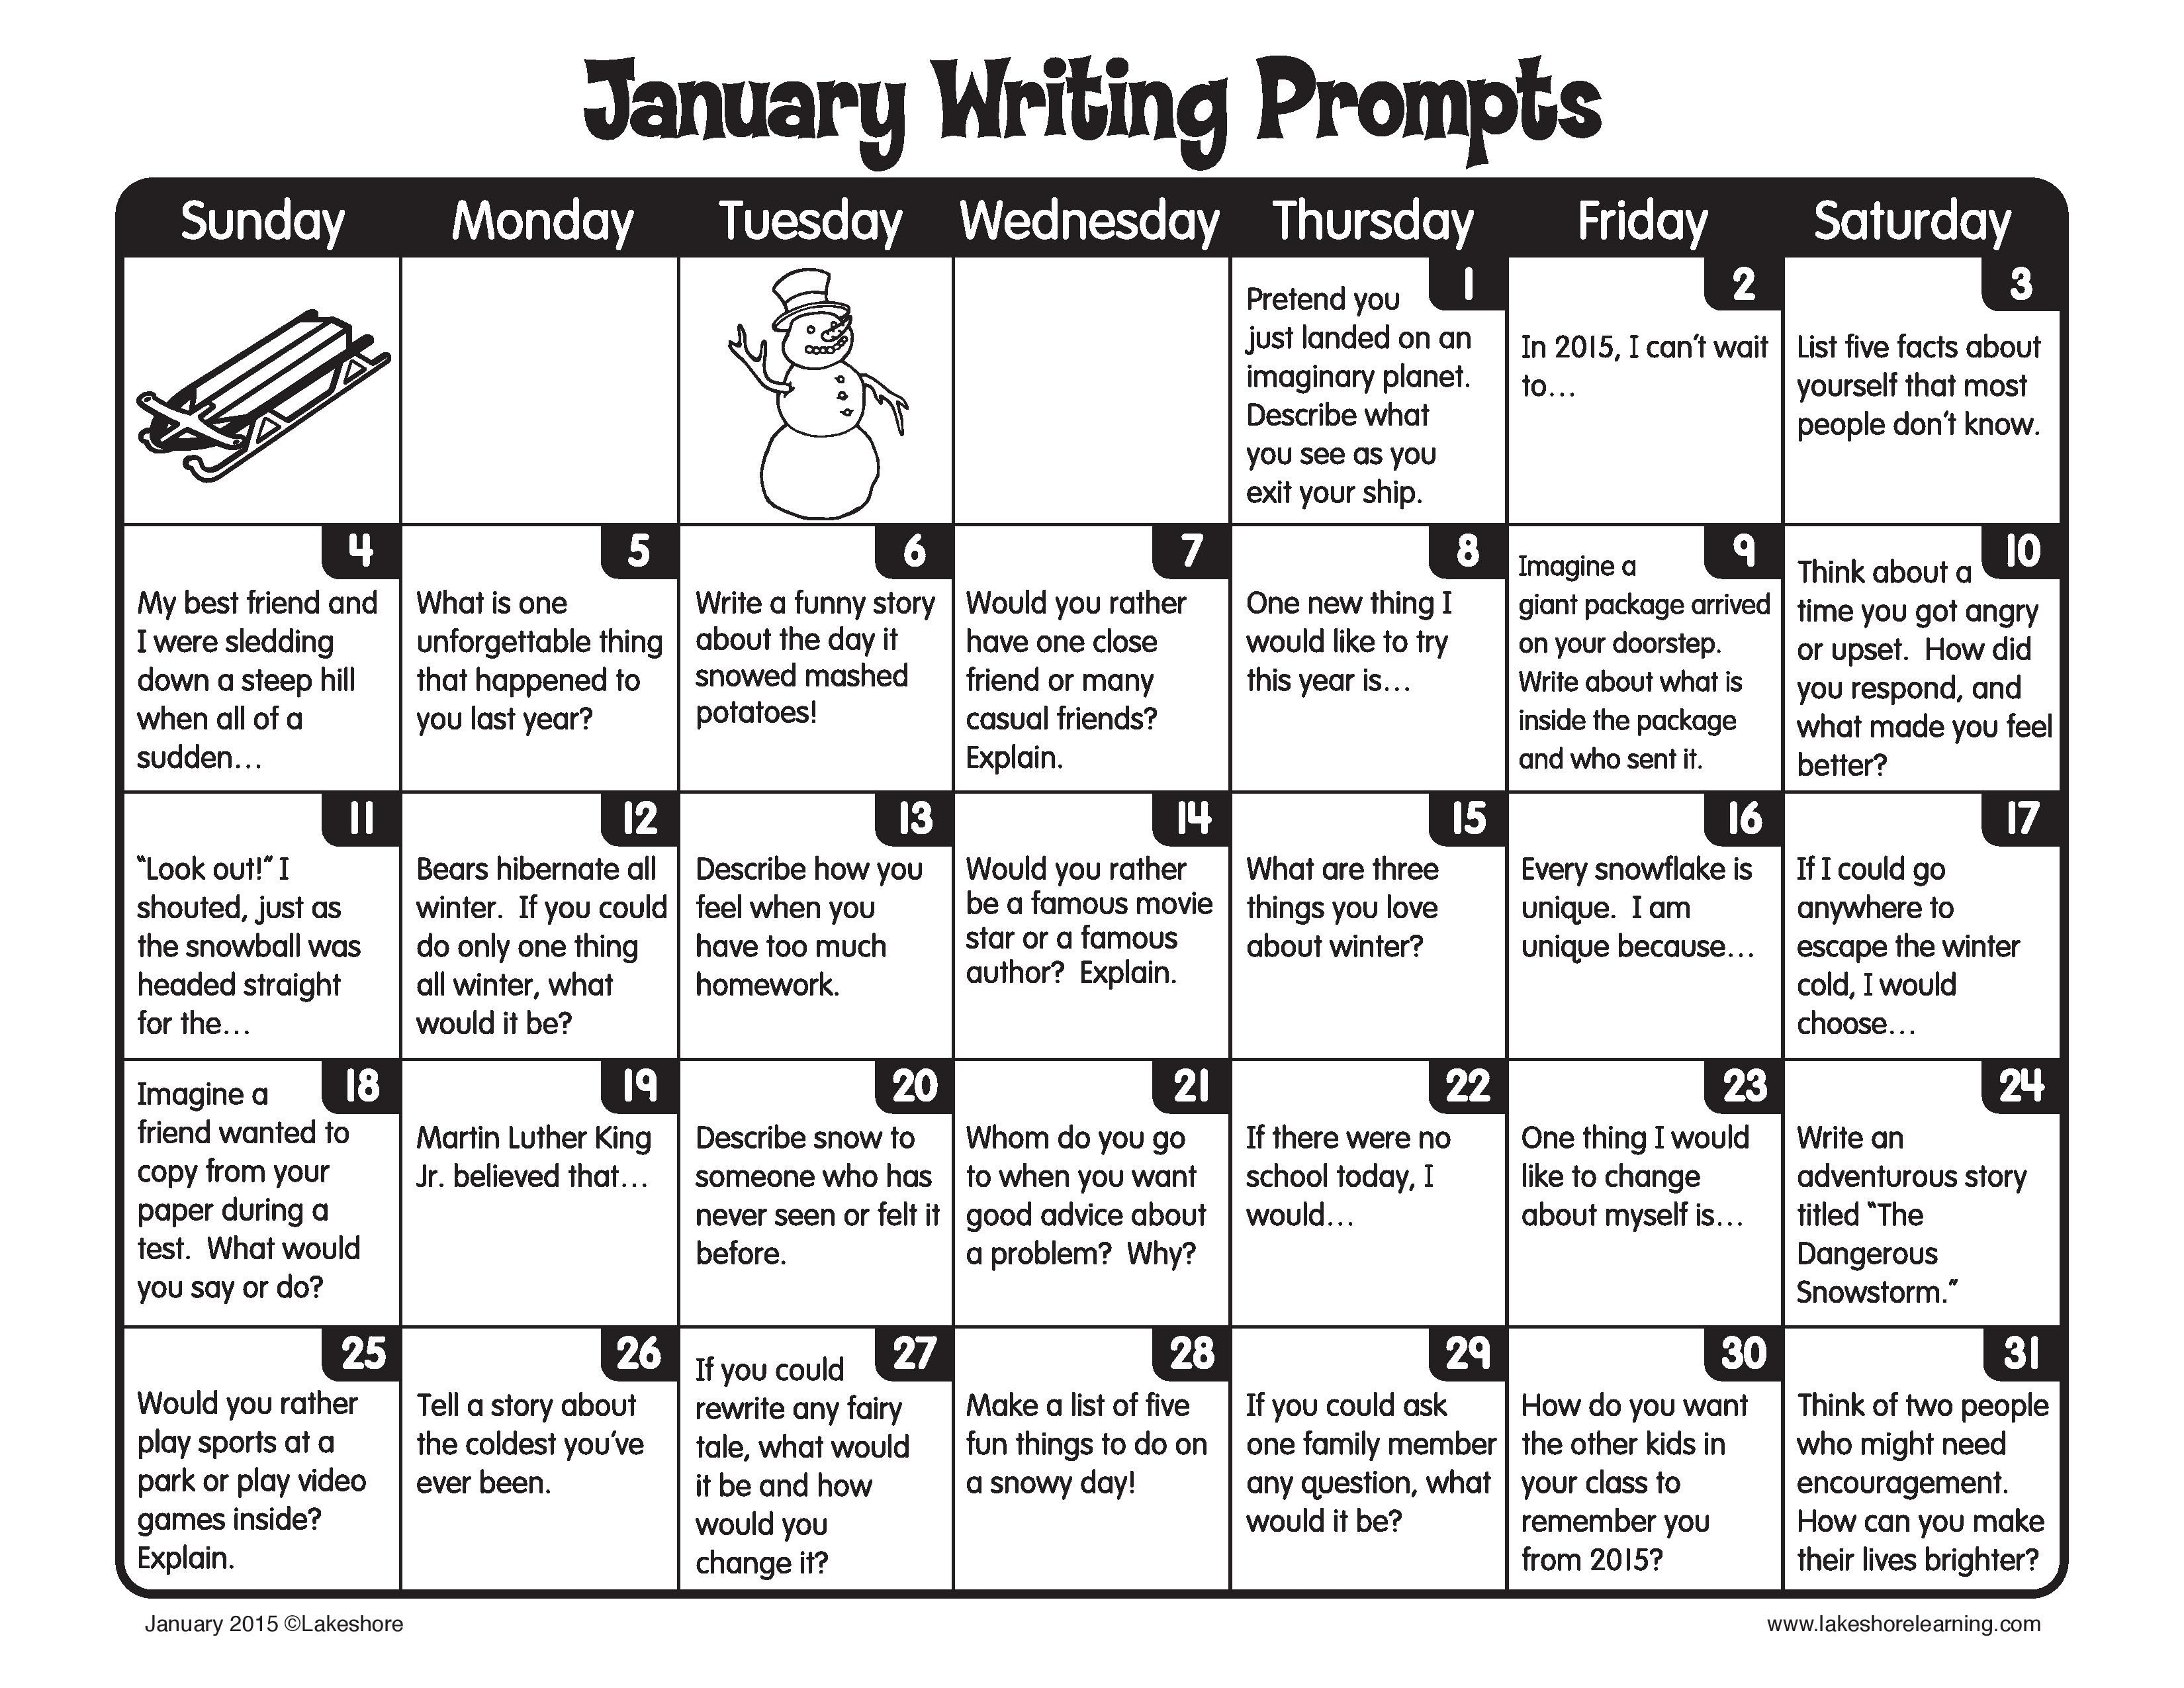 It S A Brand New Year Invite Children To Write Every Day In The Month Of January January Writing Prompts October Writing Prompts January Writing Creative writing prompts for third